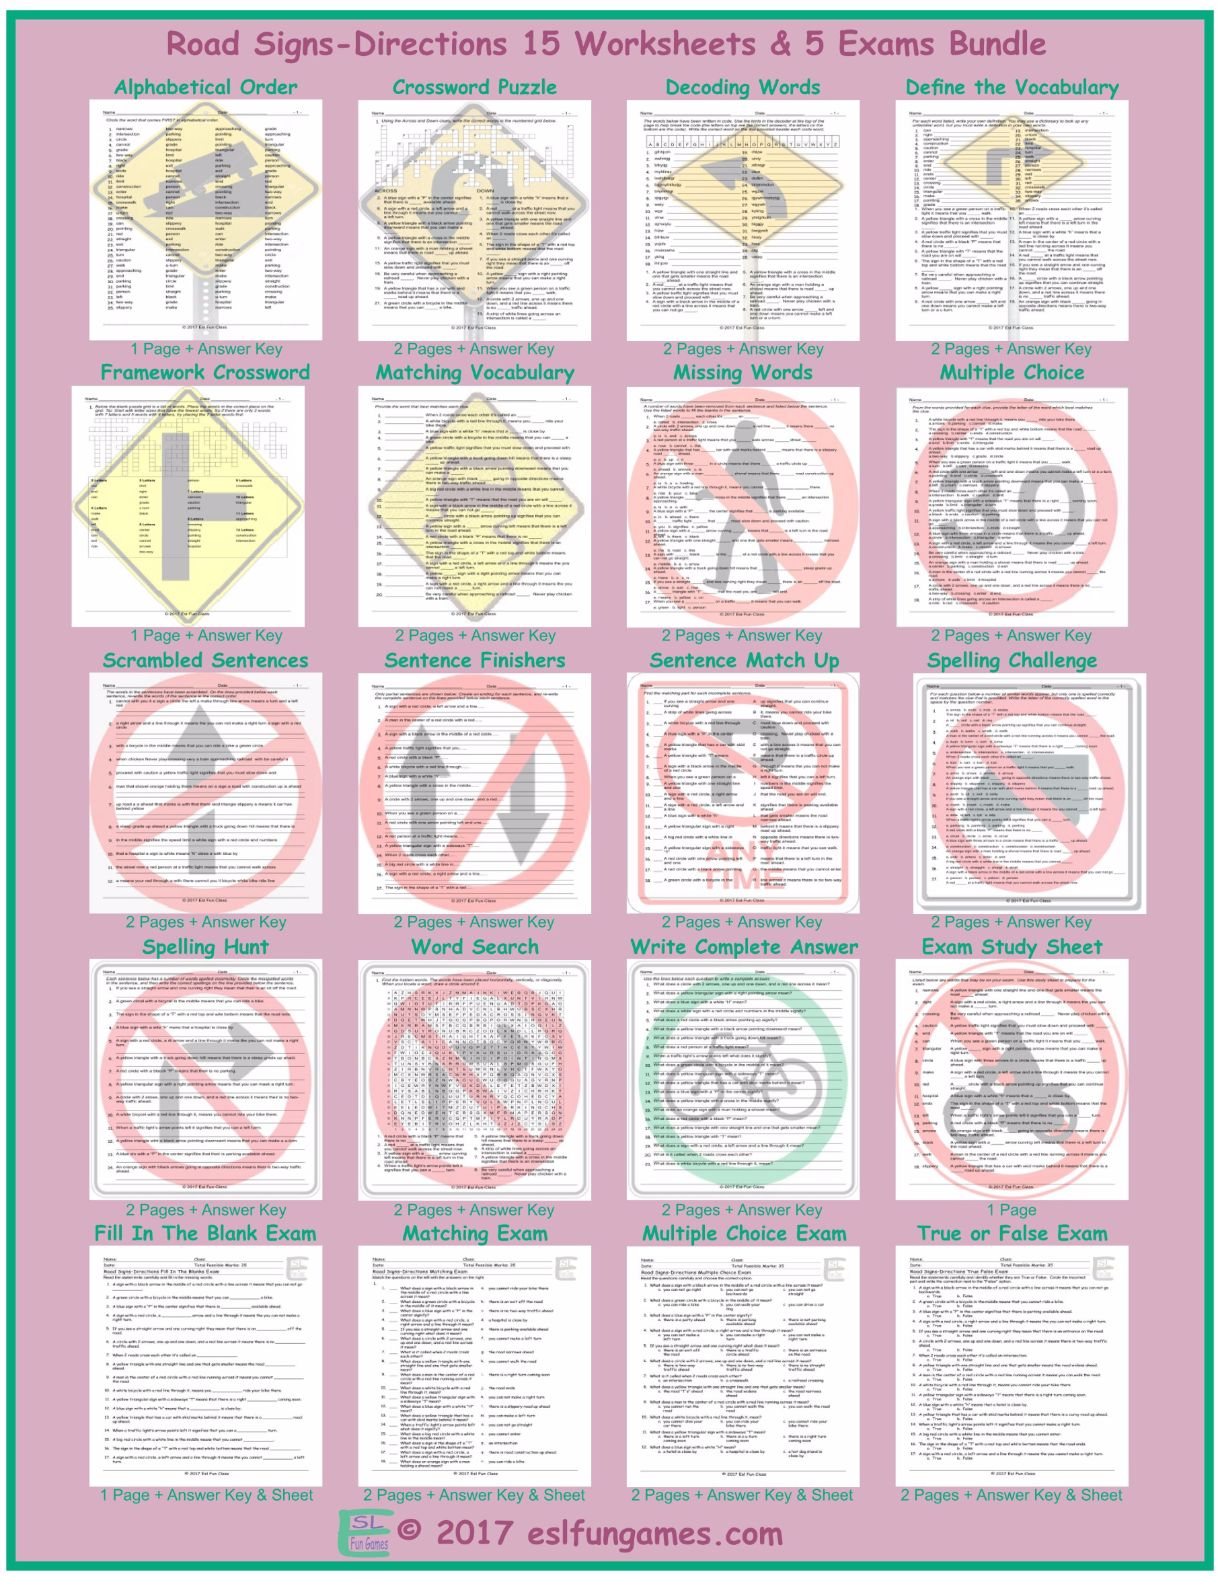 Road Signs Directions 20 Worksheet And Exam Bundle By